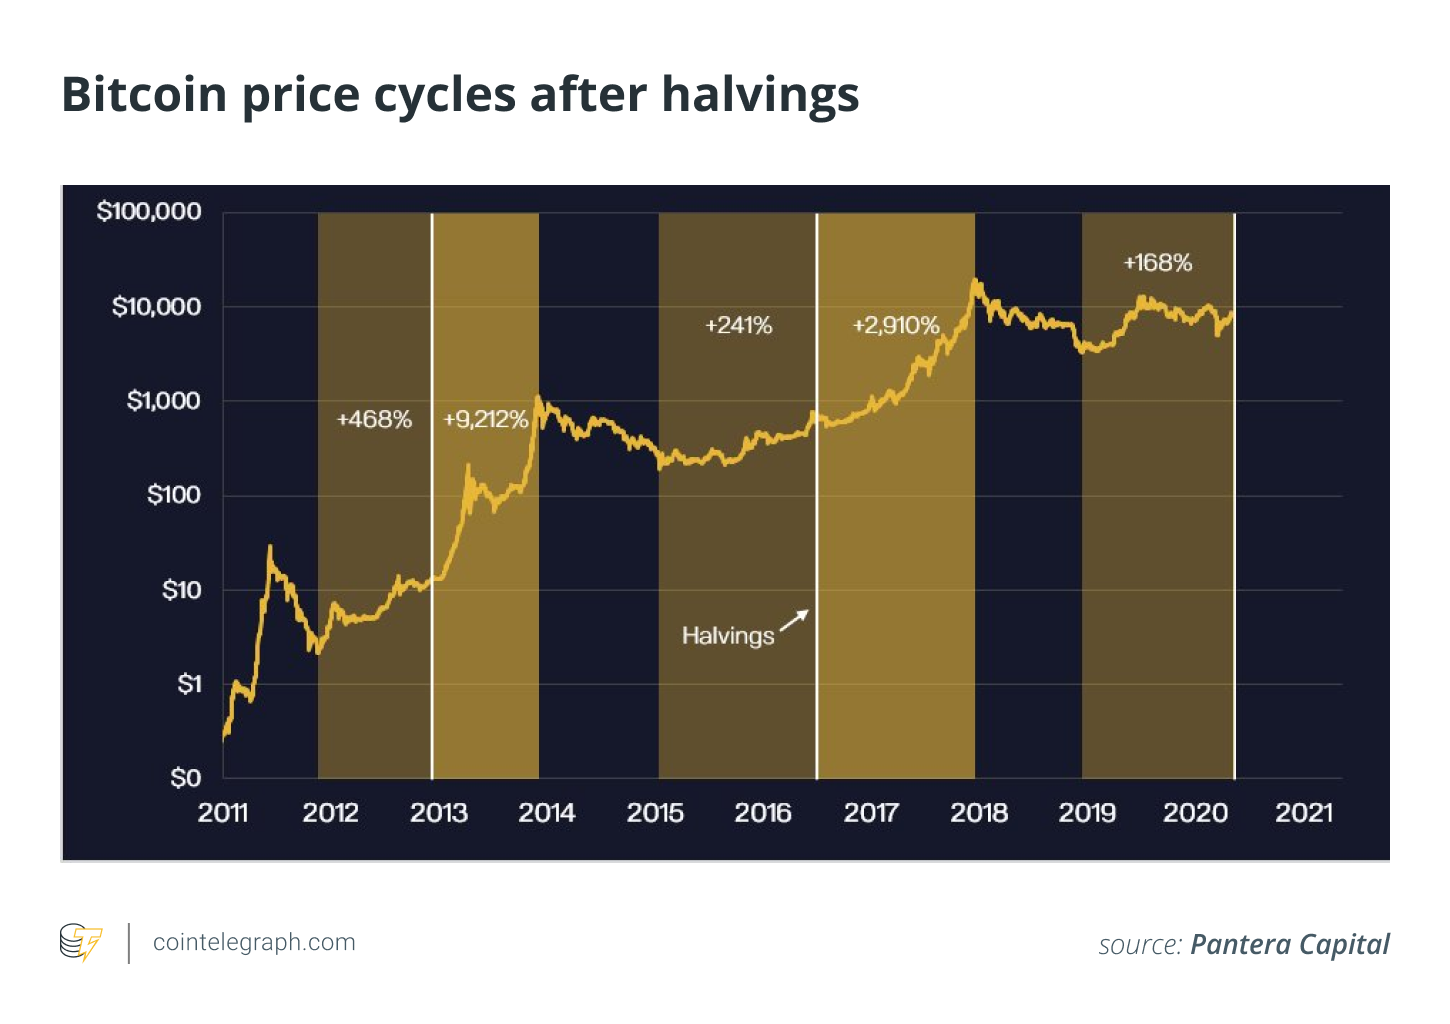 Bitcoin price cycles after halvings